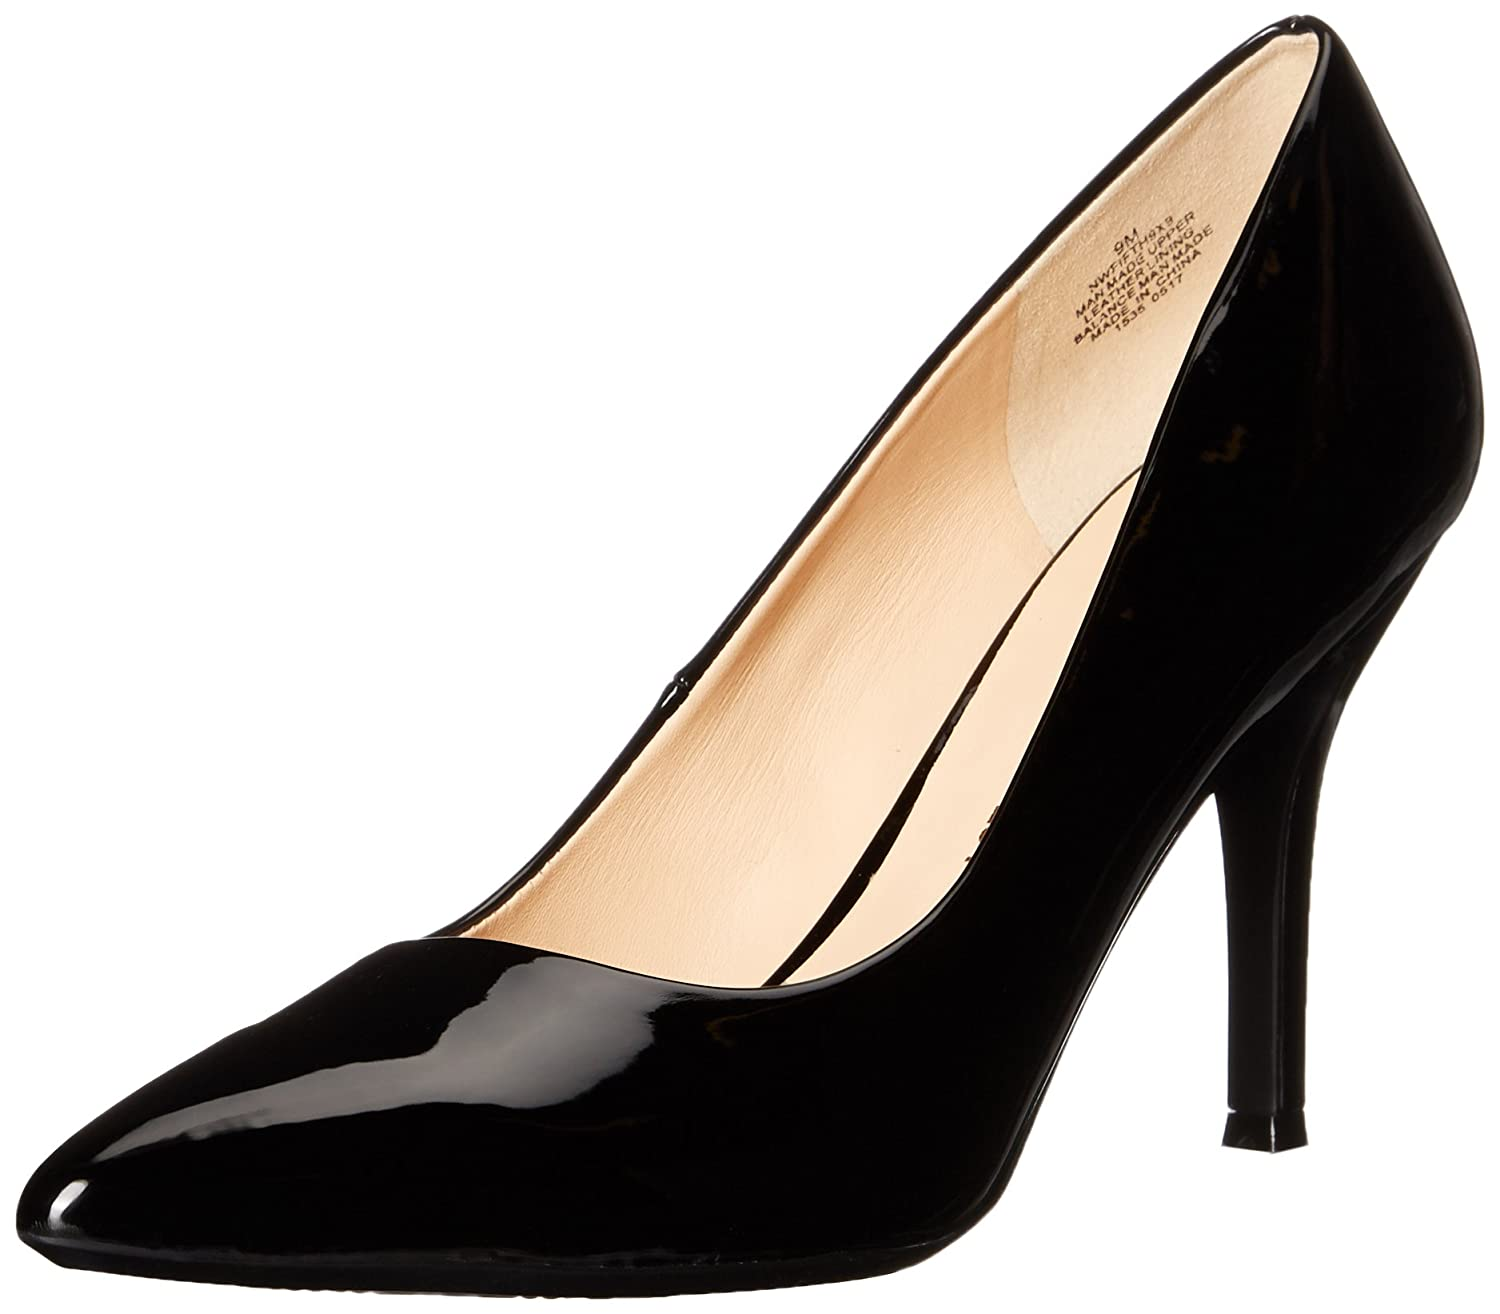 Nine West Women's FIFTH9X Fifth Pointy Toe Pumps B01MSUKFAF 10 B(M) US|Black Synthetic